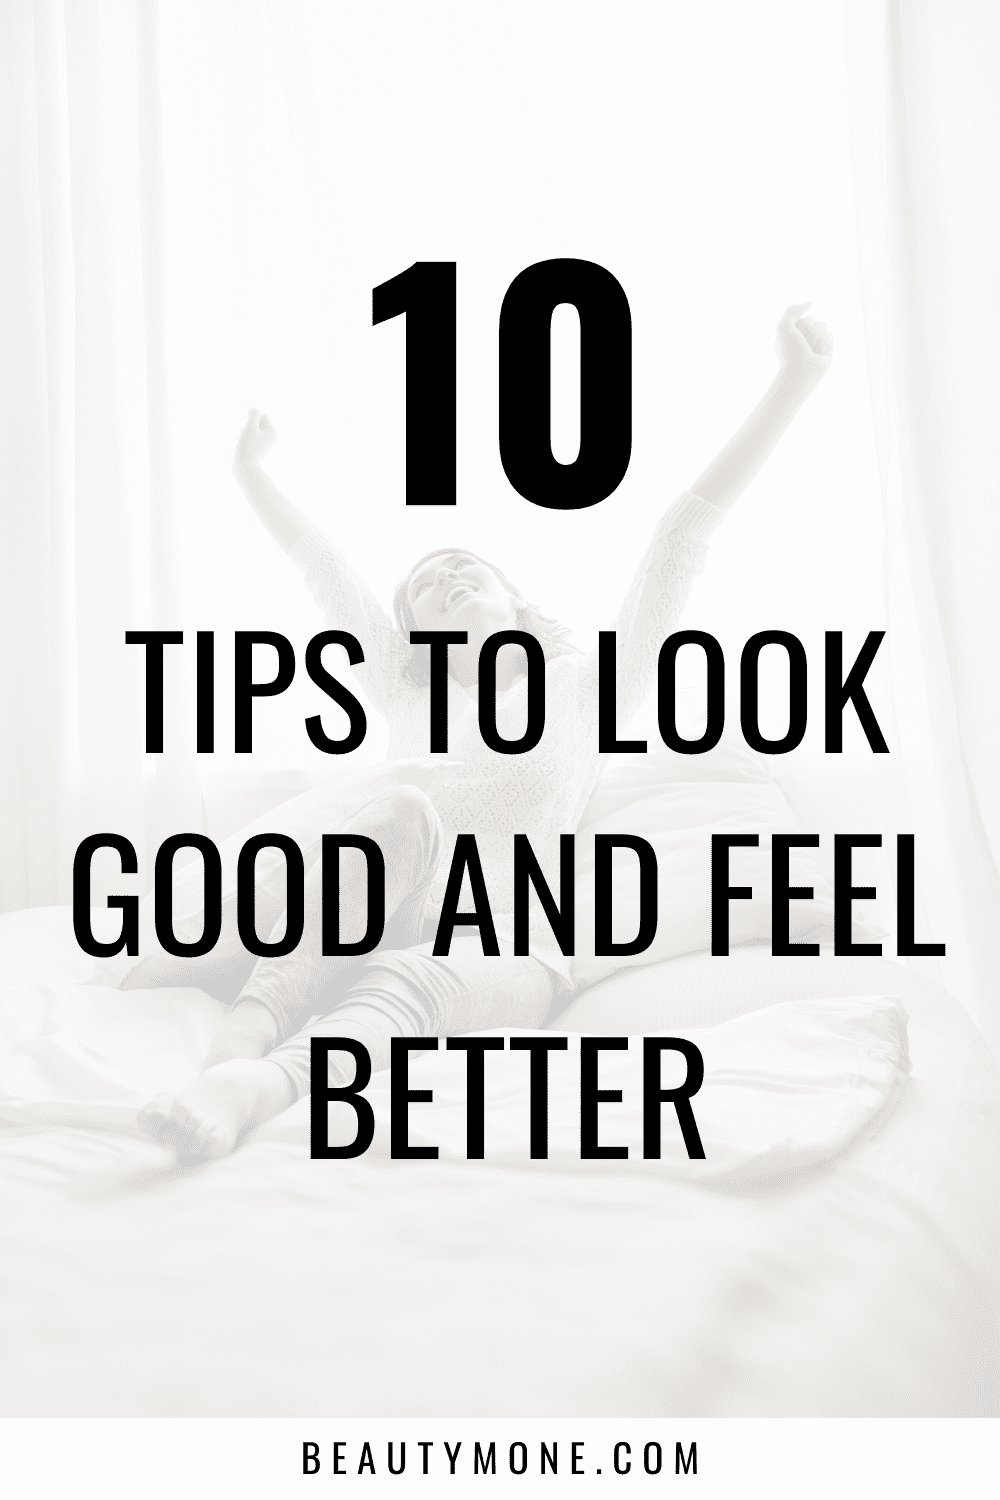 10 Tips to Look Good and Feel Better ⋆ Beautymone